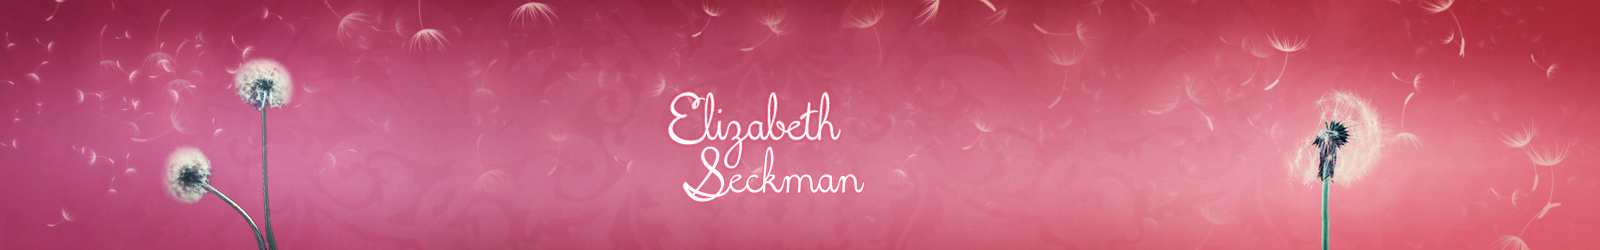 Elizabeth Seckman, Author